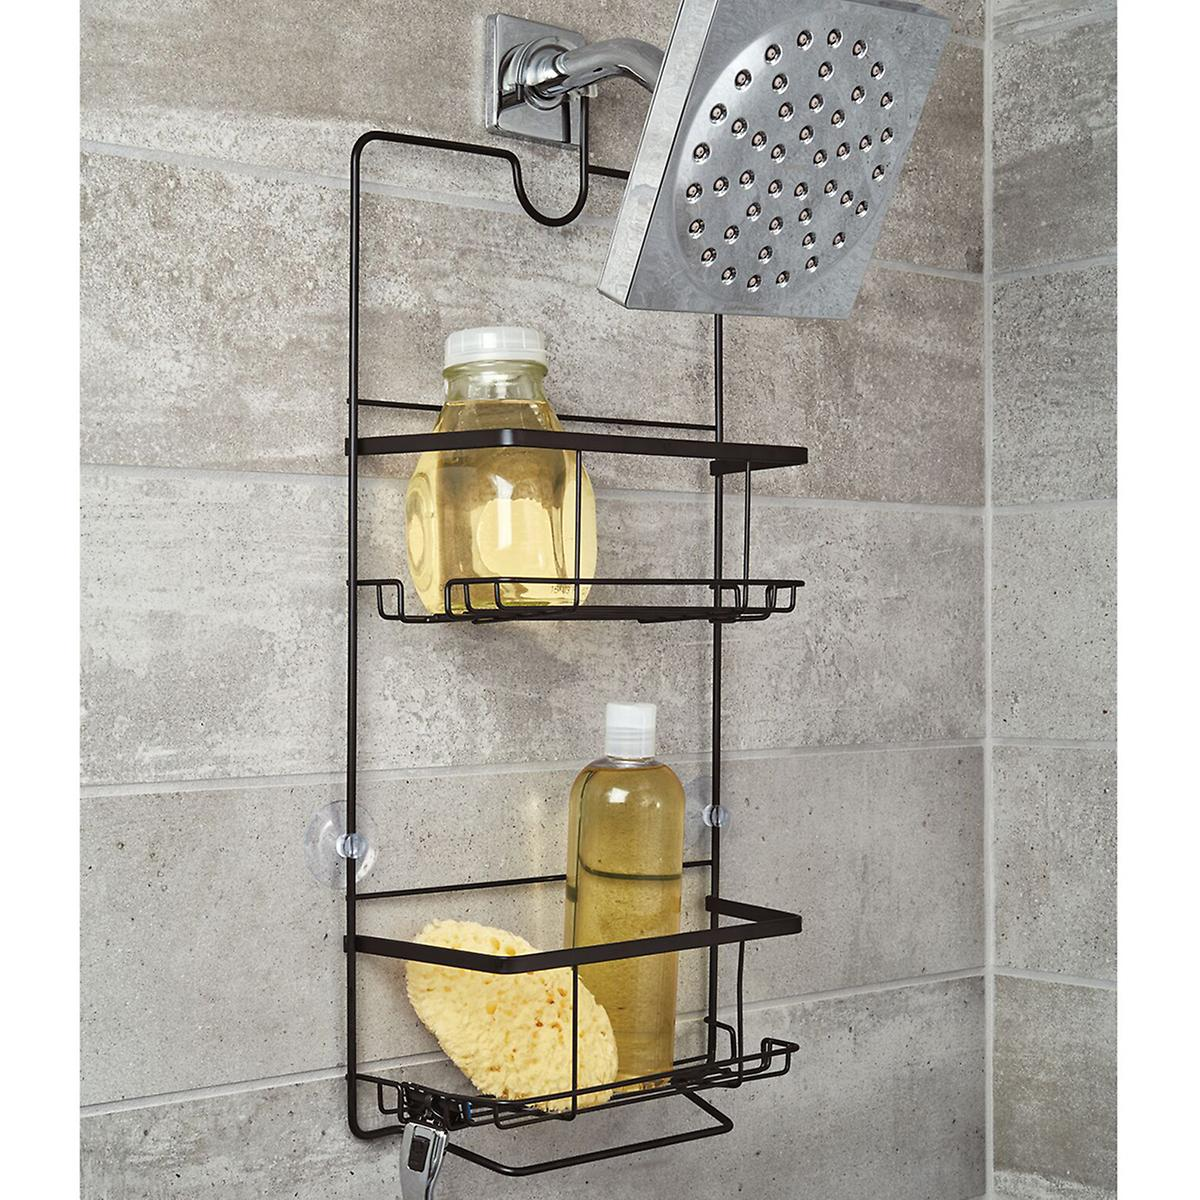 iDesign Everett Matte Black Push-Lock Suction Shower Caddy